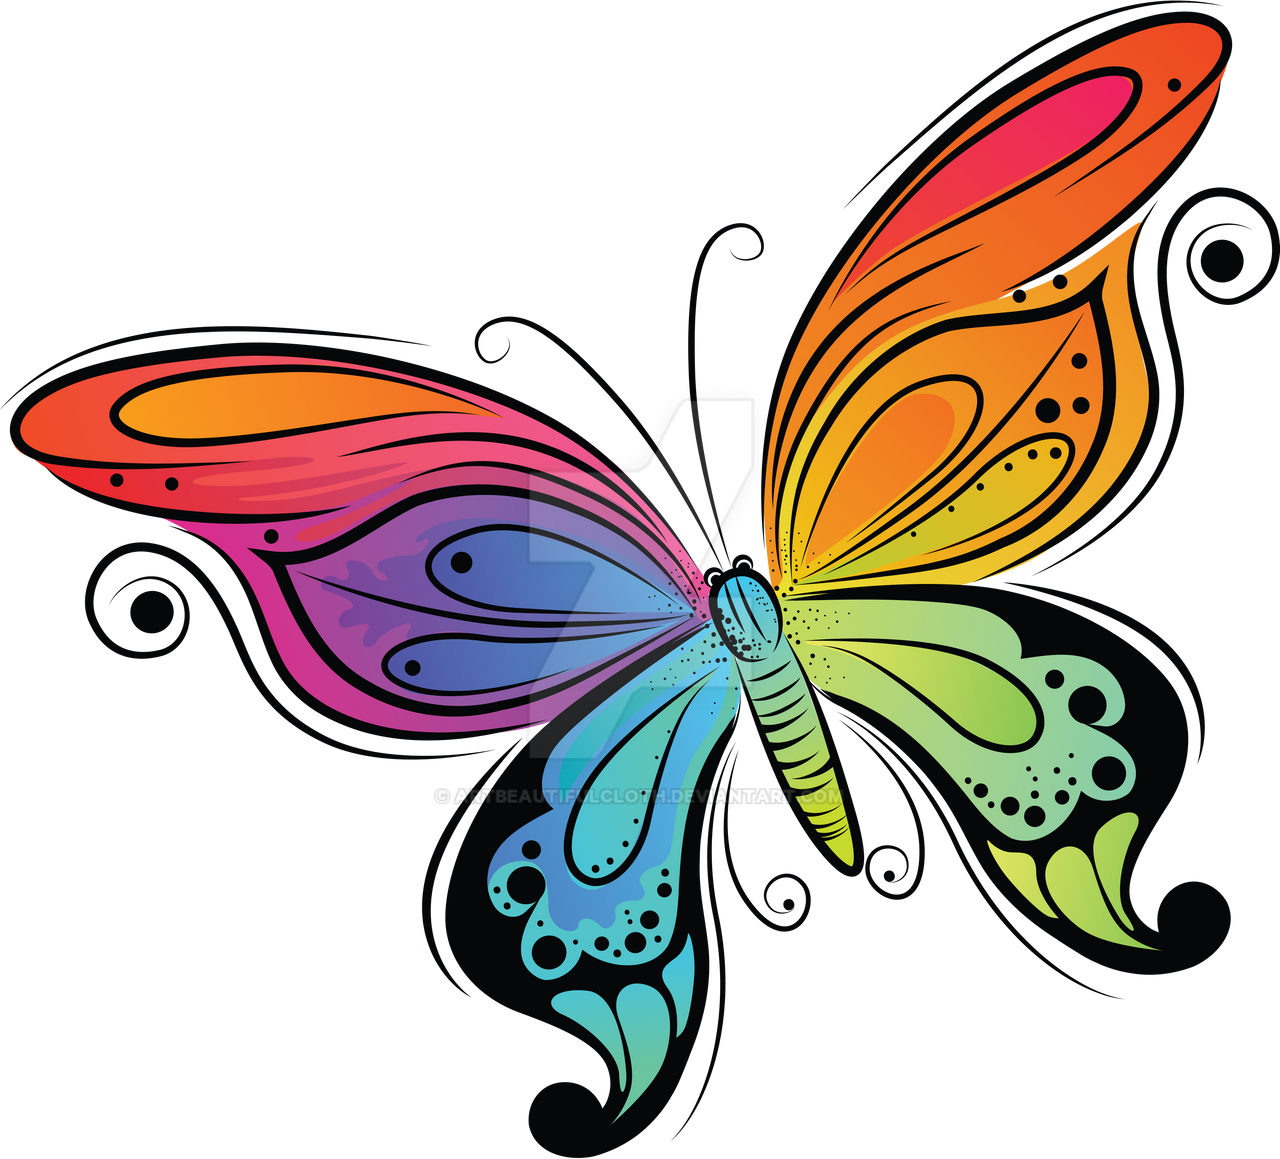 Butterfly Drawings: Colorful Butterfly By Artbeautifulcloth On DeviantArt